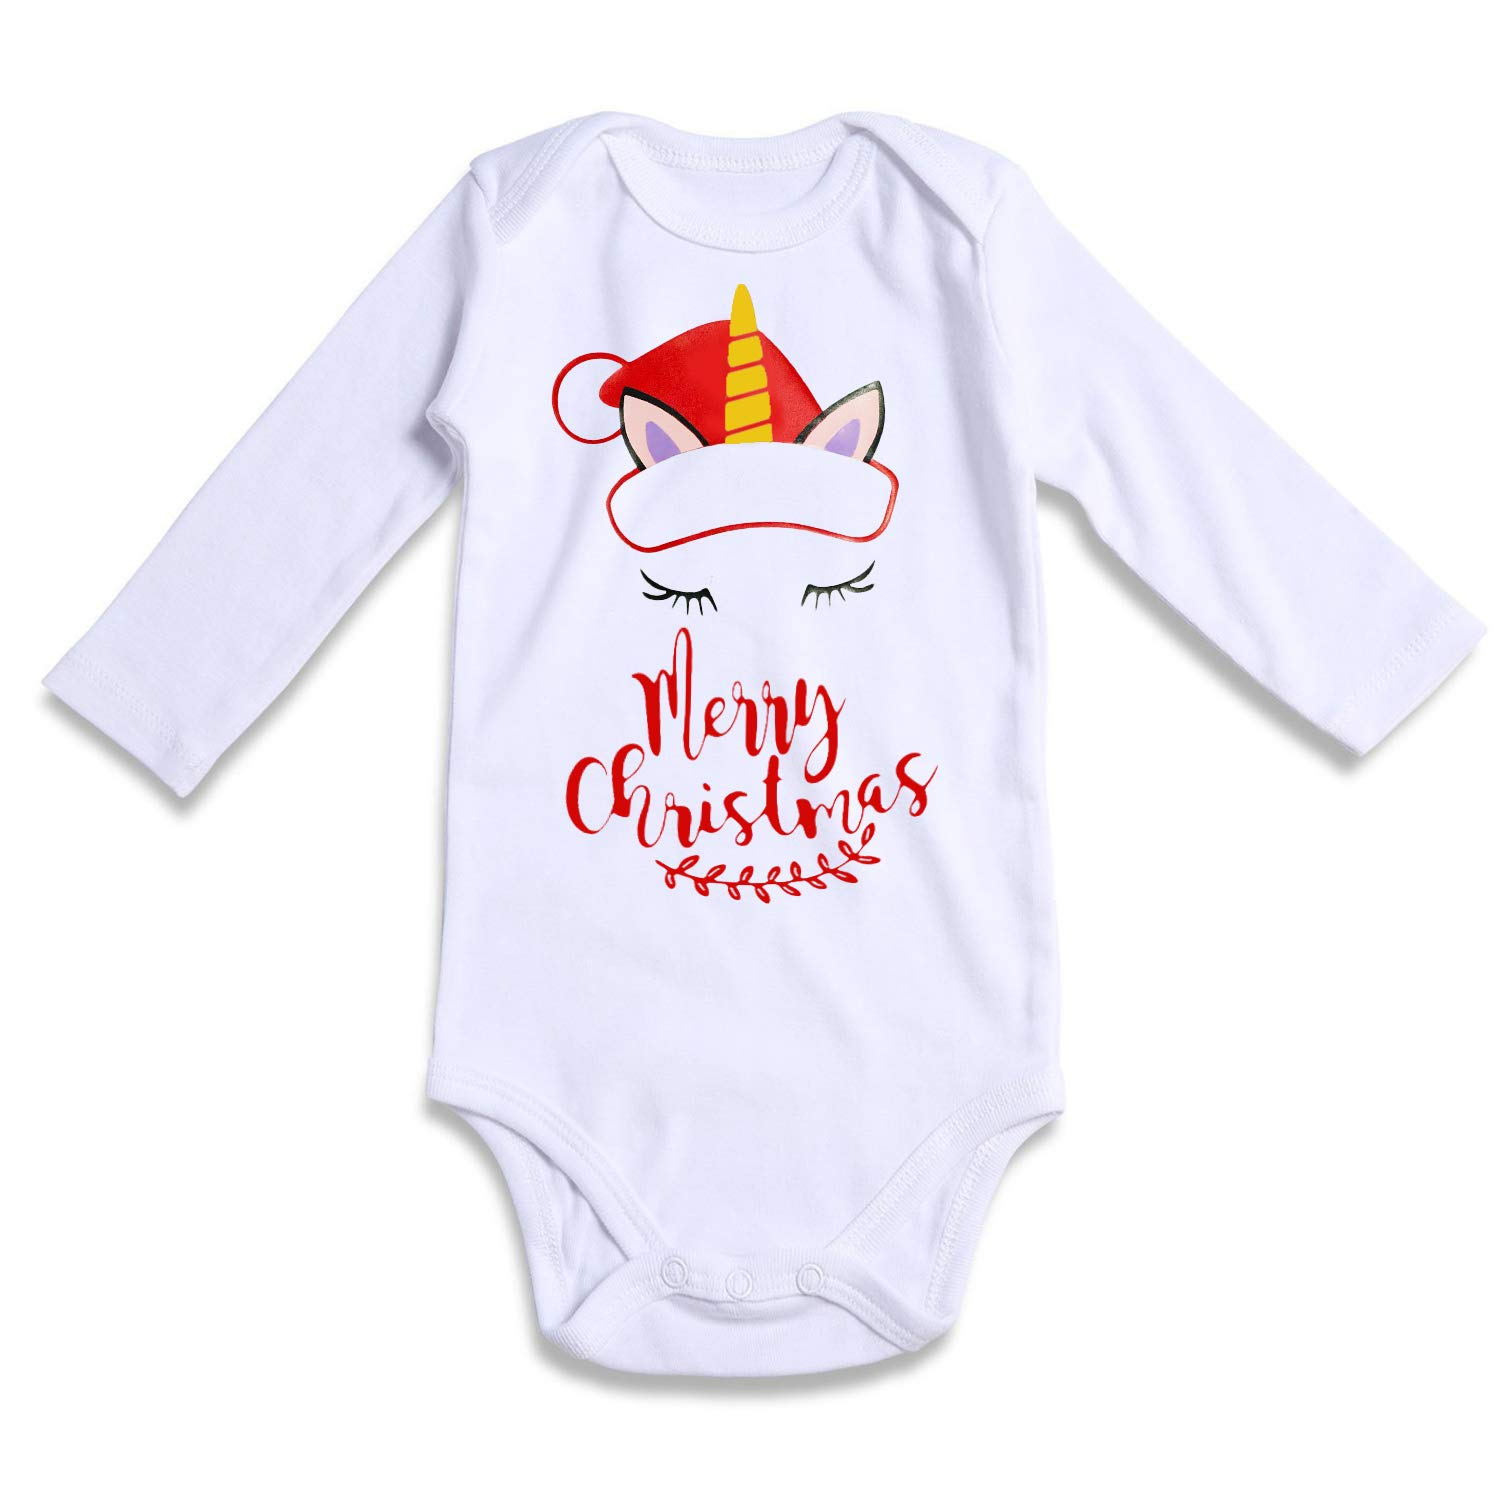 aa3767530d1b BFUSTYLE Unisex Newborn Infant T Shirt Little Kids Jumpsuit Long Sleeves  Christmas Unicorn Outfits Baby Girl Boy 100% Cotton One-Piece Bodysuit  Rompers ...